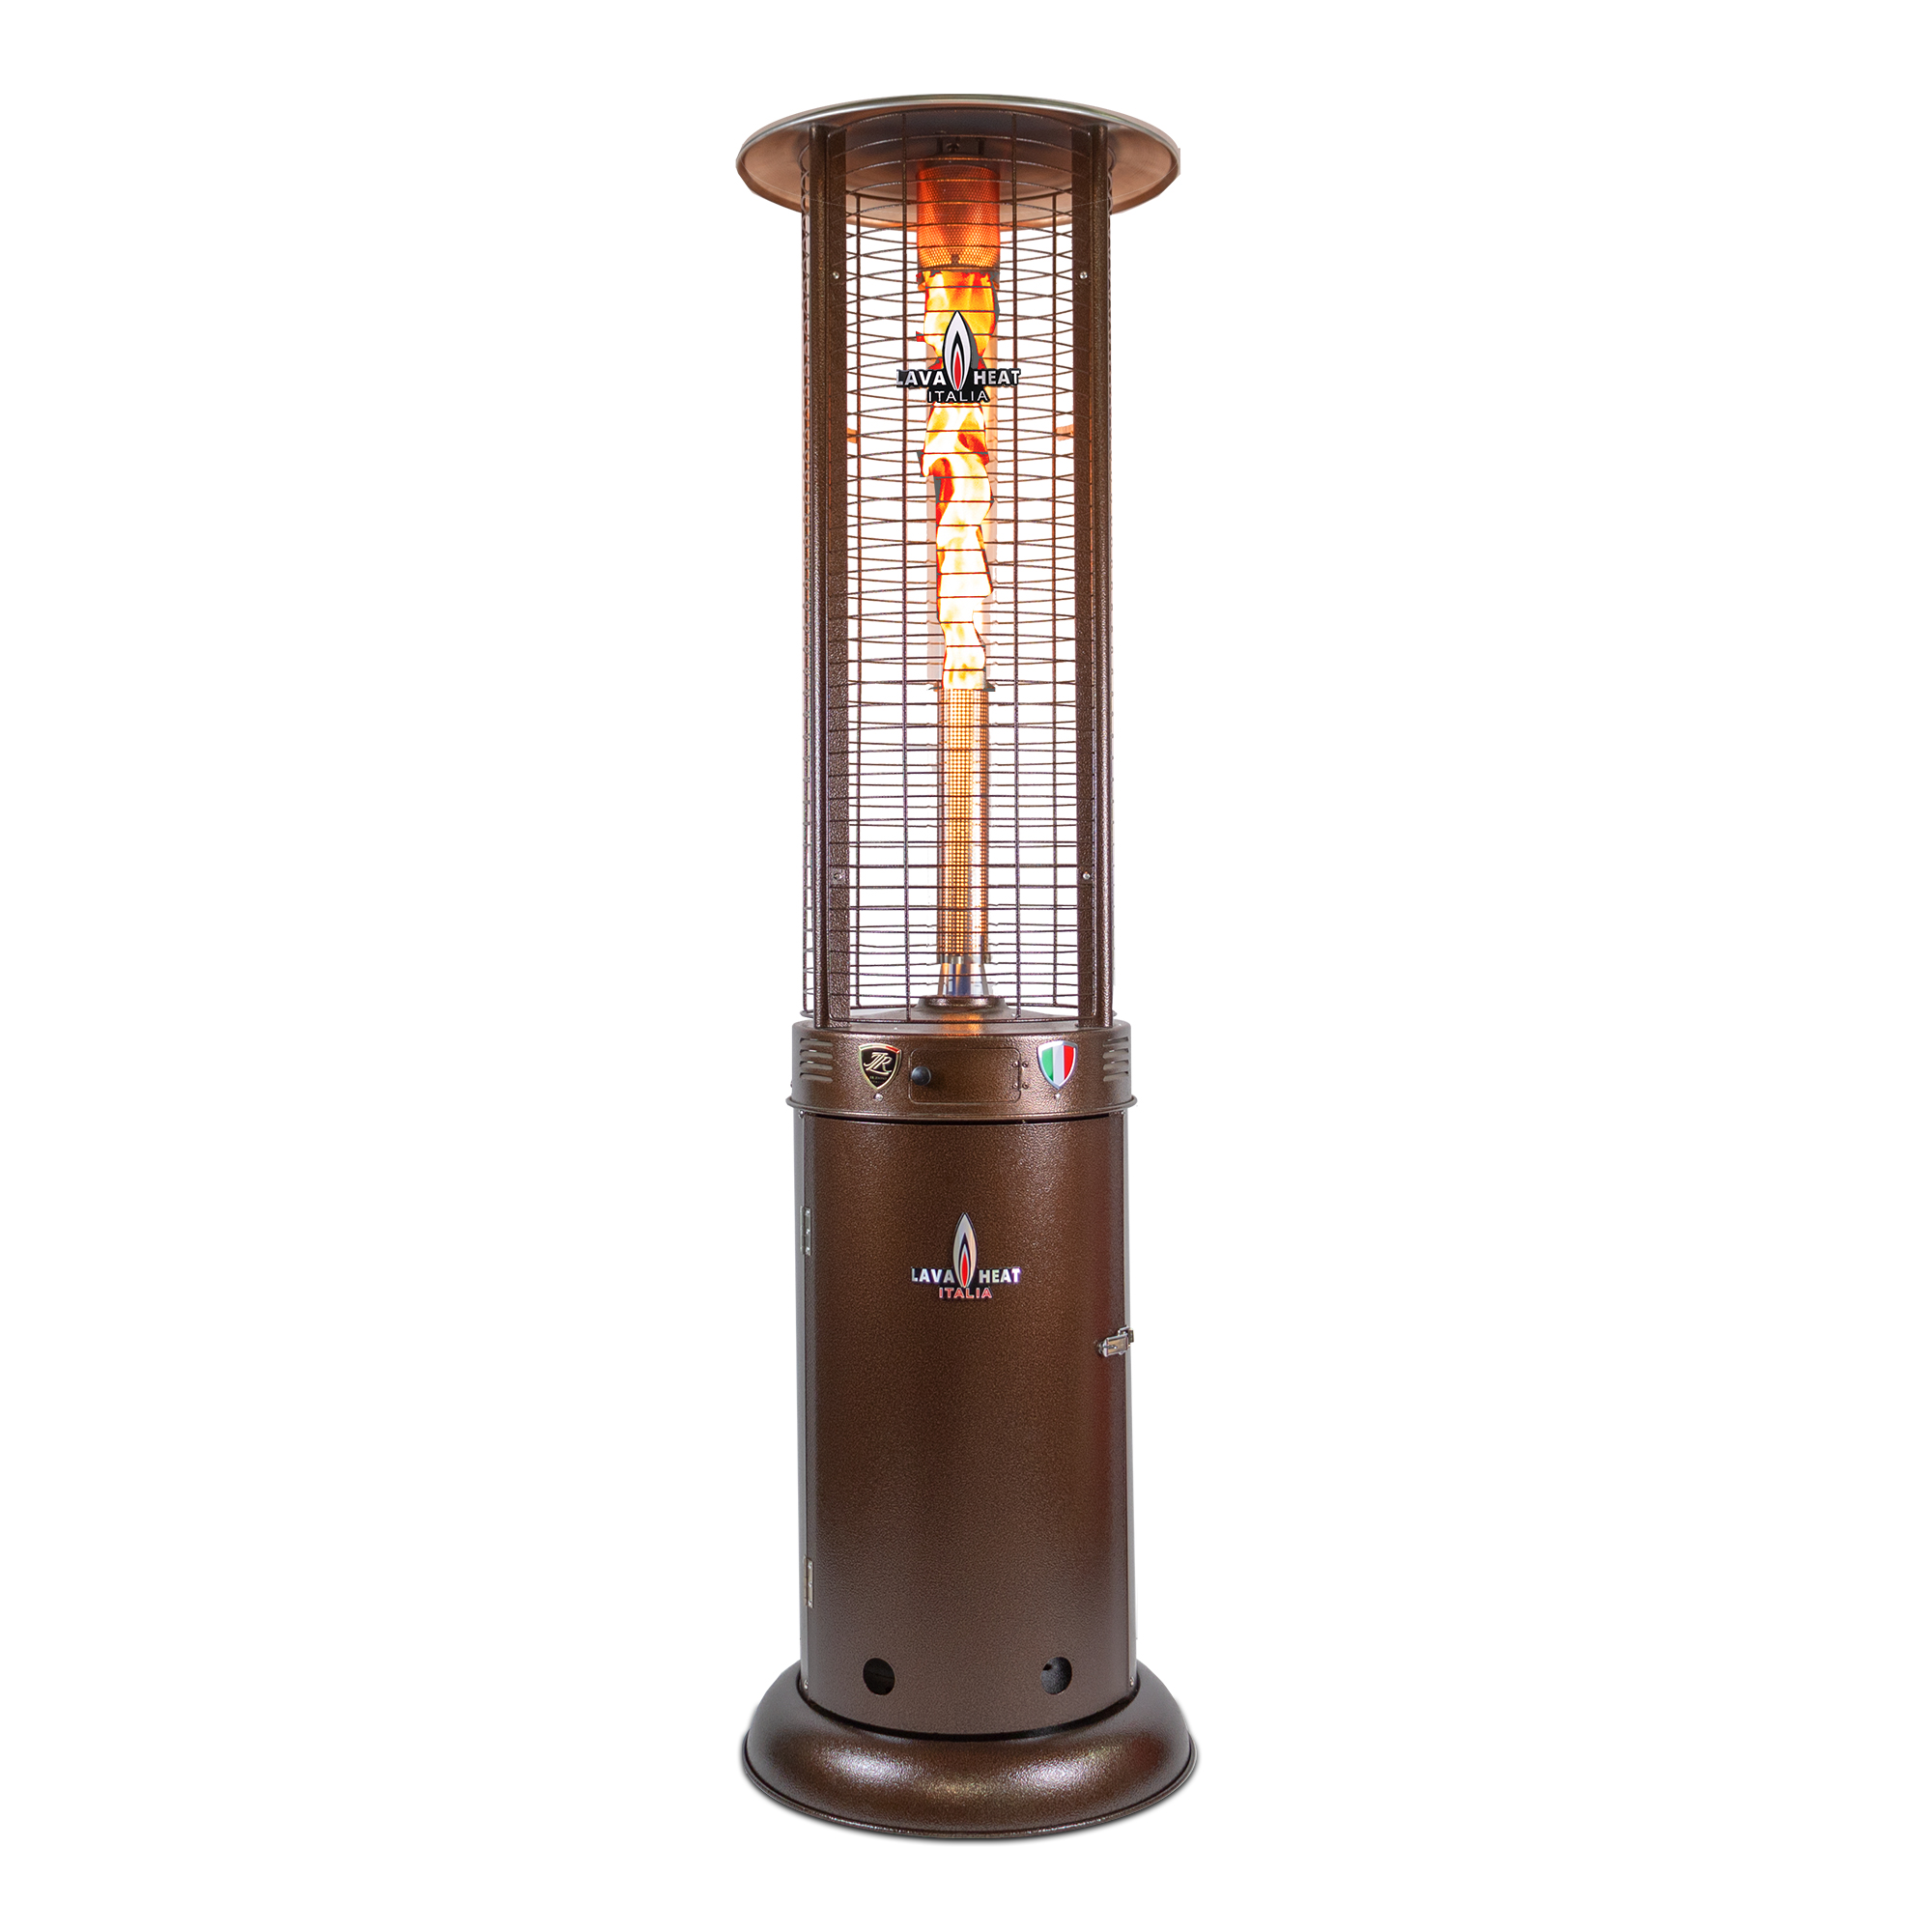 The Lava Heat Italia R-Line 7 Foot Commercial Flame Tower Heater, Manual Ignition, Heritage Bronze Finish, Natural Gas